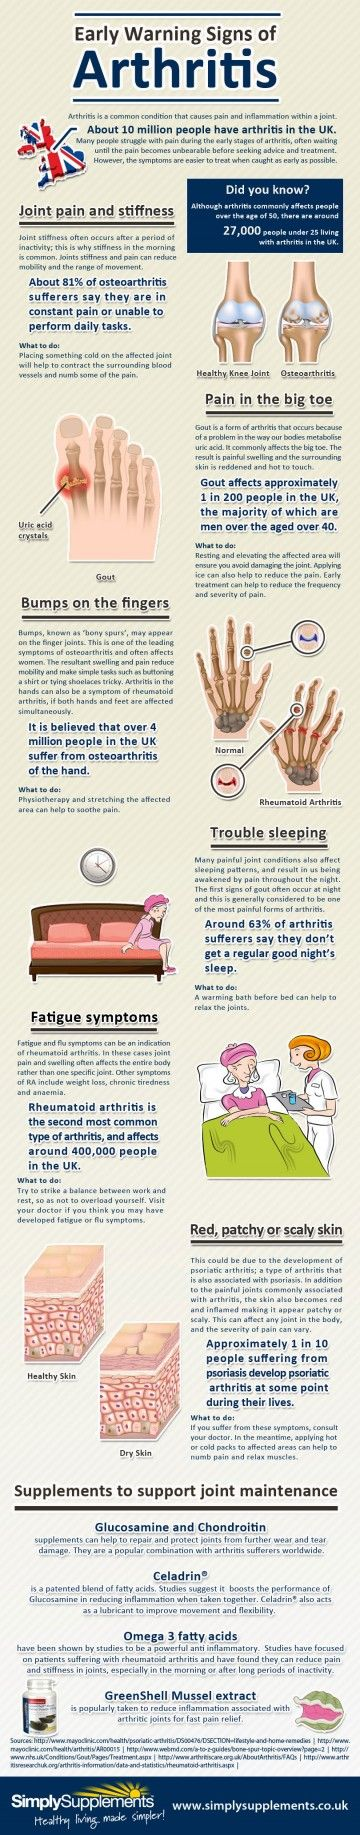 Early Warning Signs of Arthritis Infographic | Health Blog